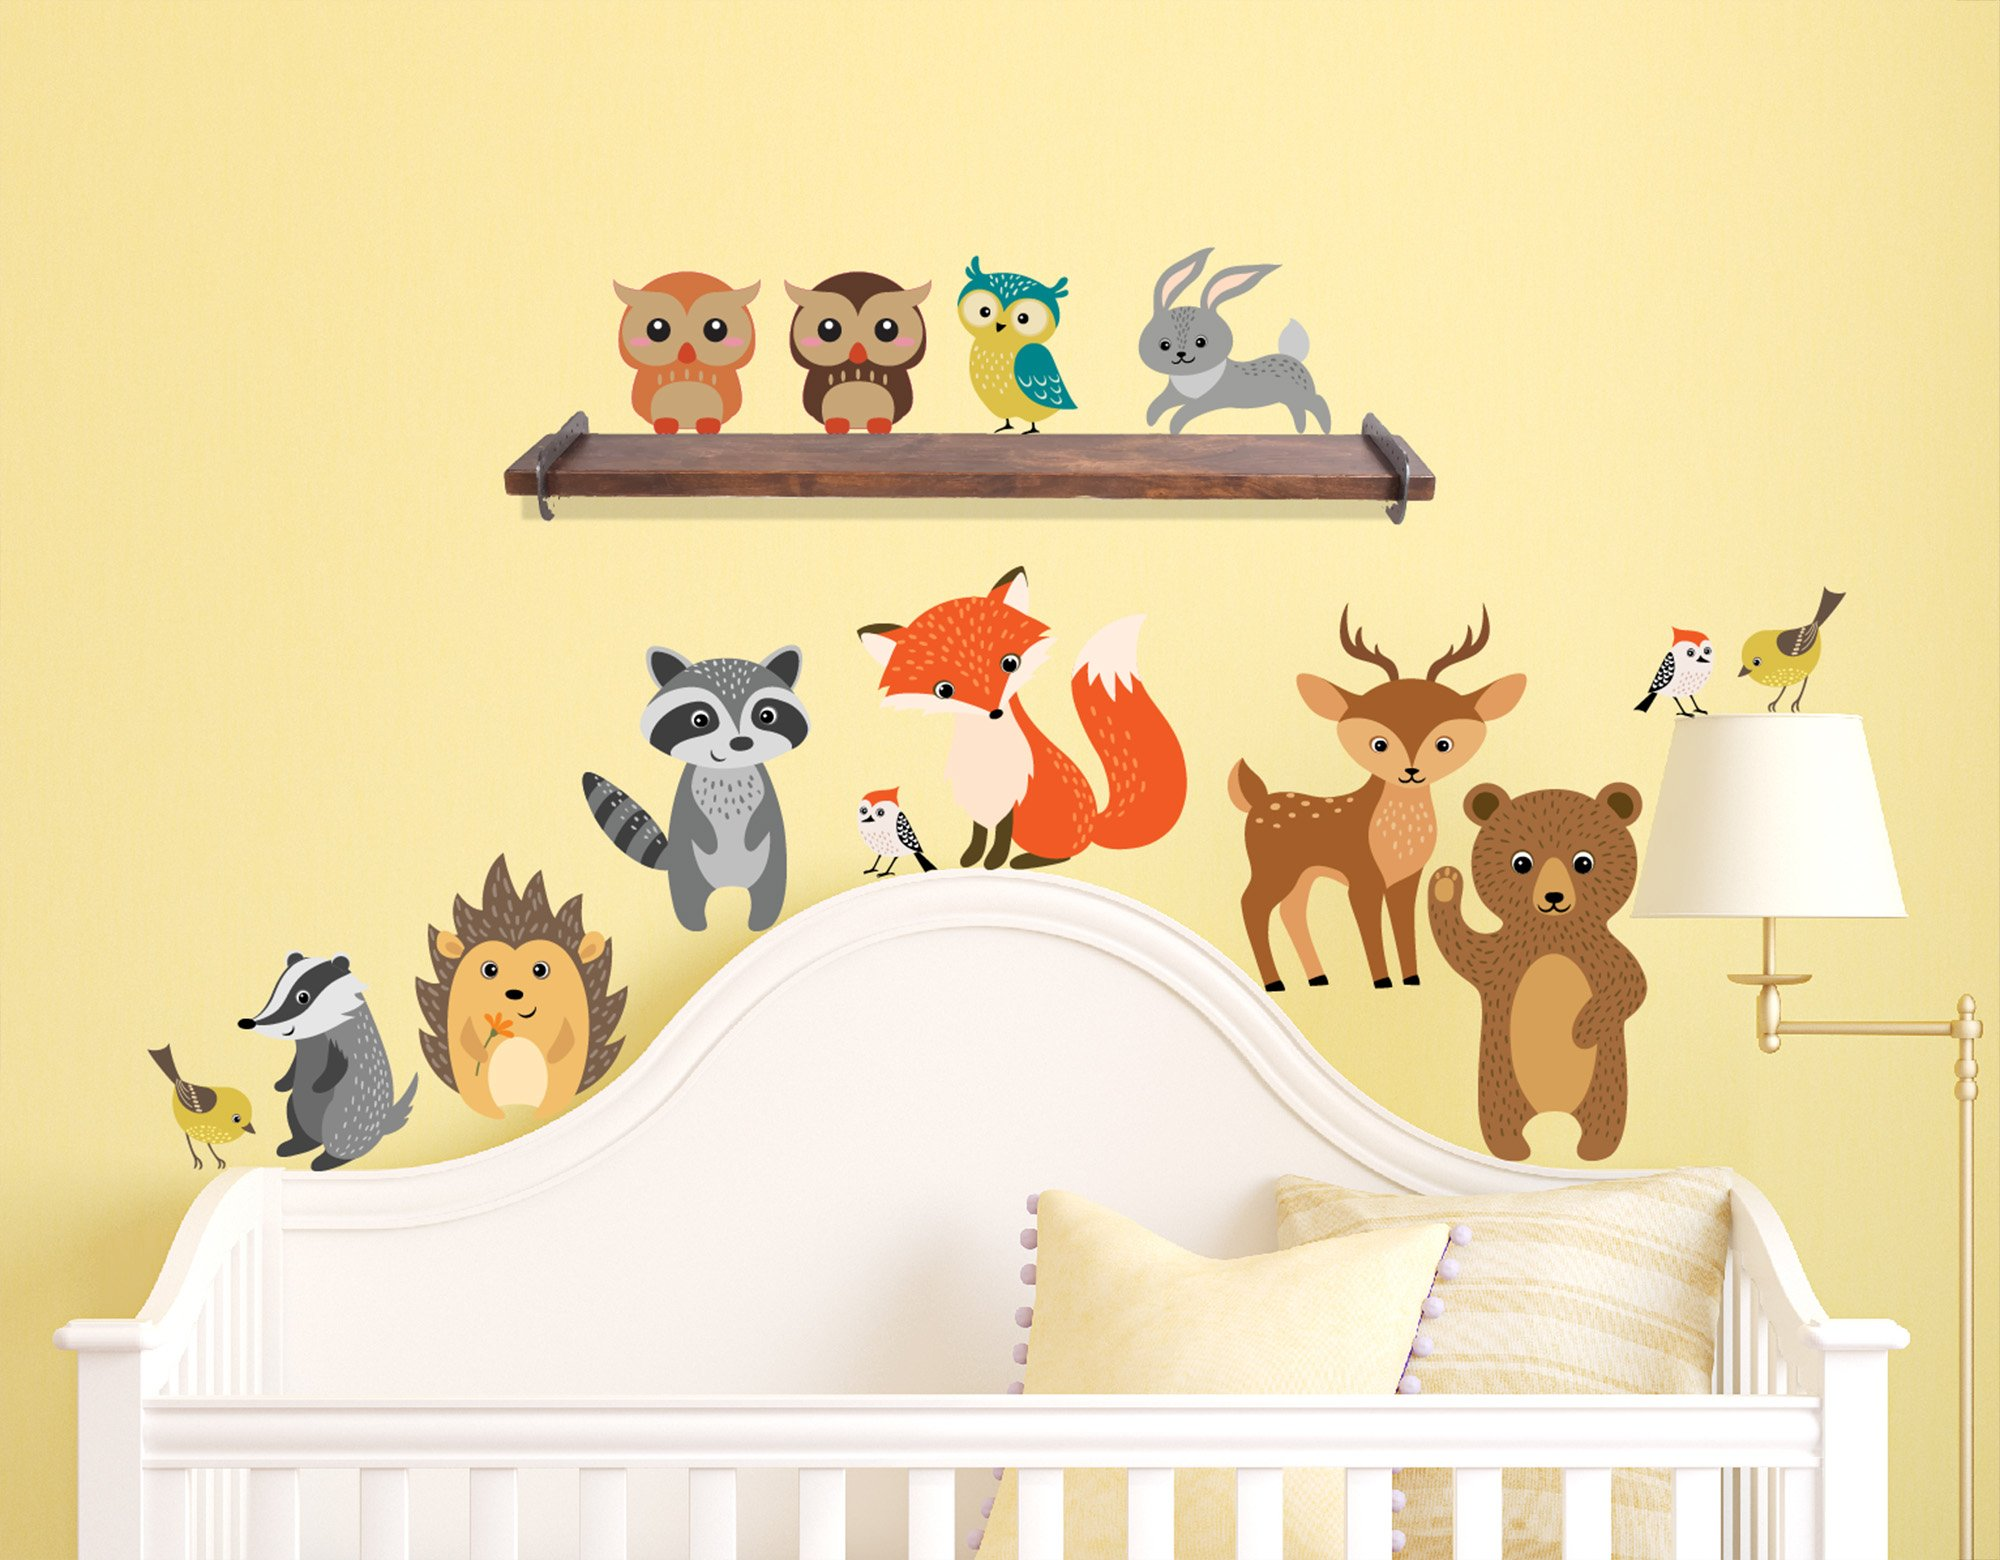 Innovative Stencils Forest Animals Wall Decals Peel and Stick Bear, Fox, Owl, Bunny, Racoon Birds Fabric Rusable Stickers Nursery Decor, Perfect Addition to Large Tree Decals, 14 Creature Included by Innovative Stencils